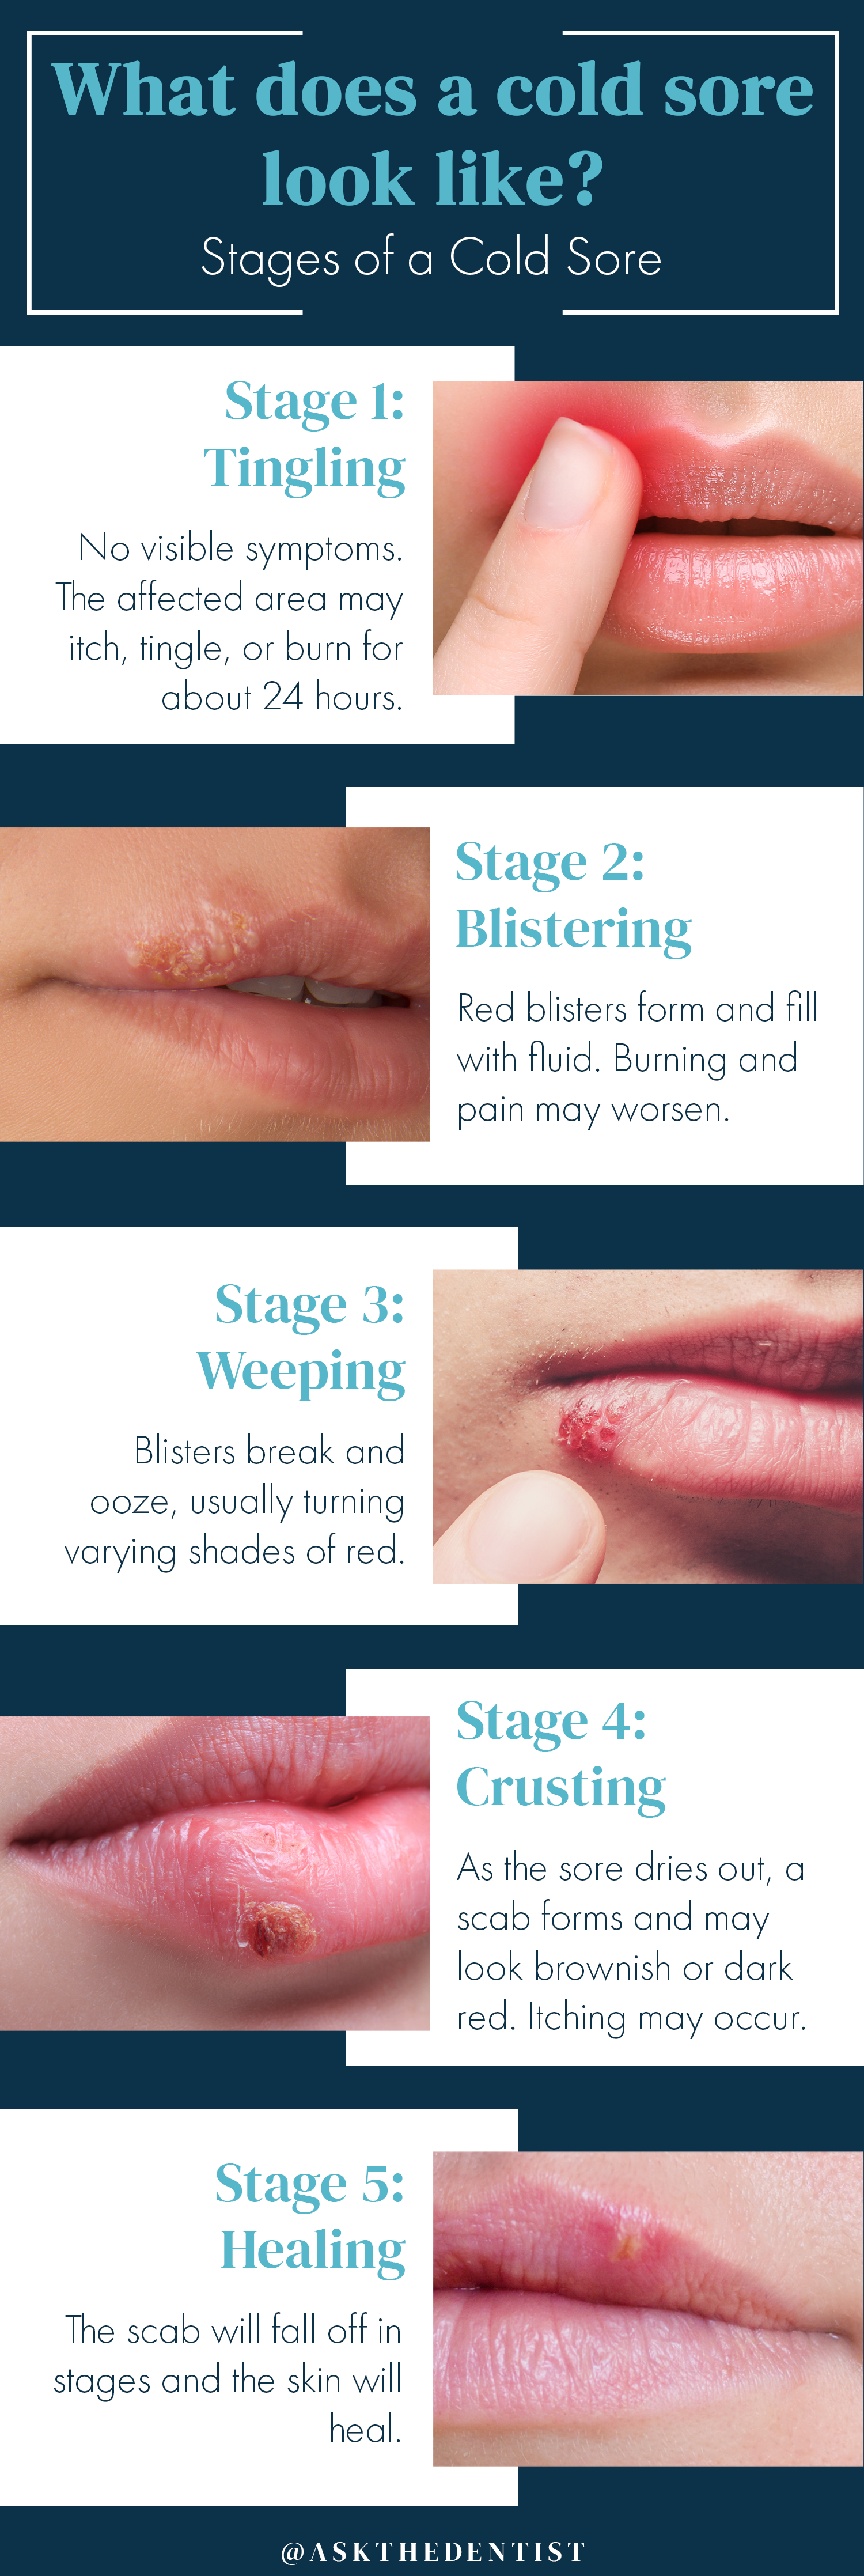 what-does-a-cold-sore-look-like, stages-of-a-cold-sore, cold-sore-stages, cold-sore-pictures